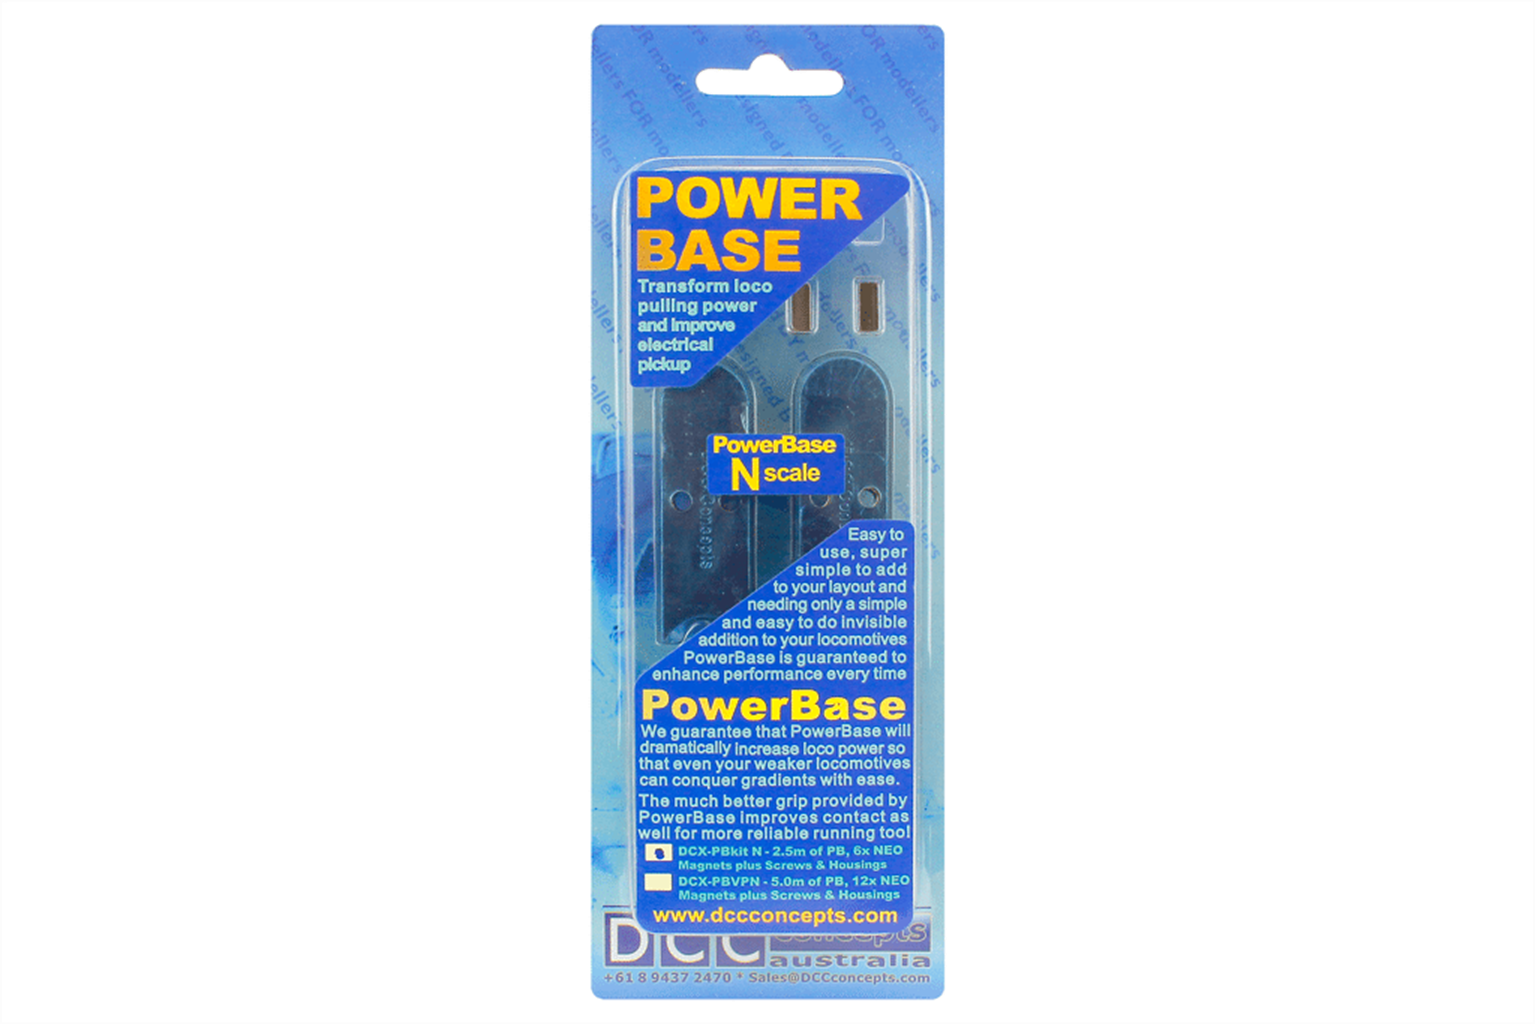 DCC Concepts Powerbase OO Starter Kit (2.5m & 6 Magnets)